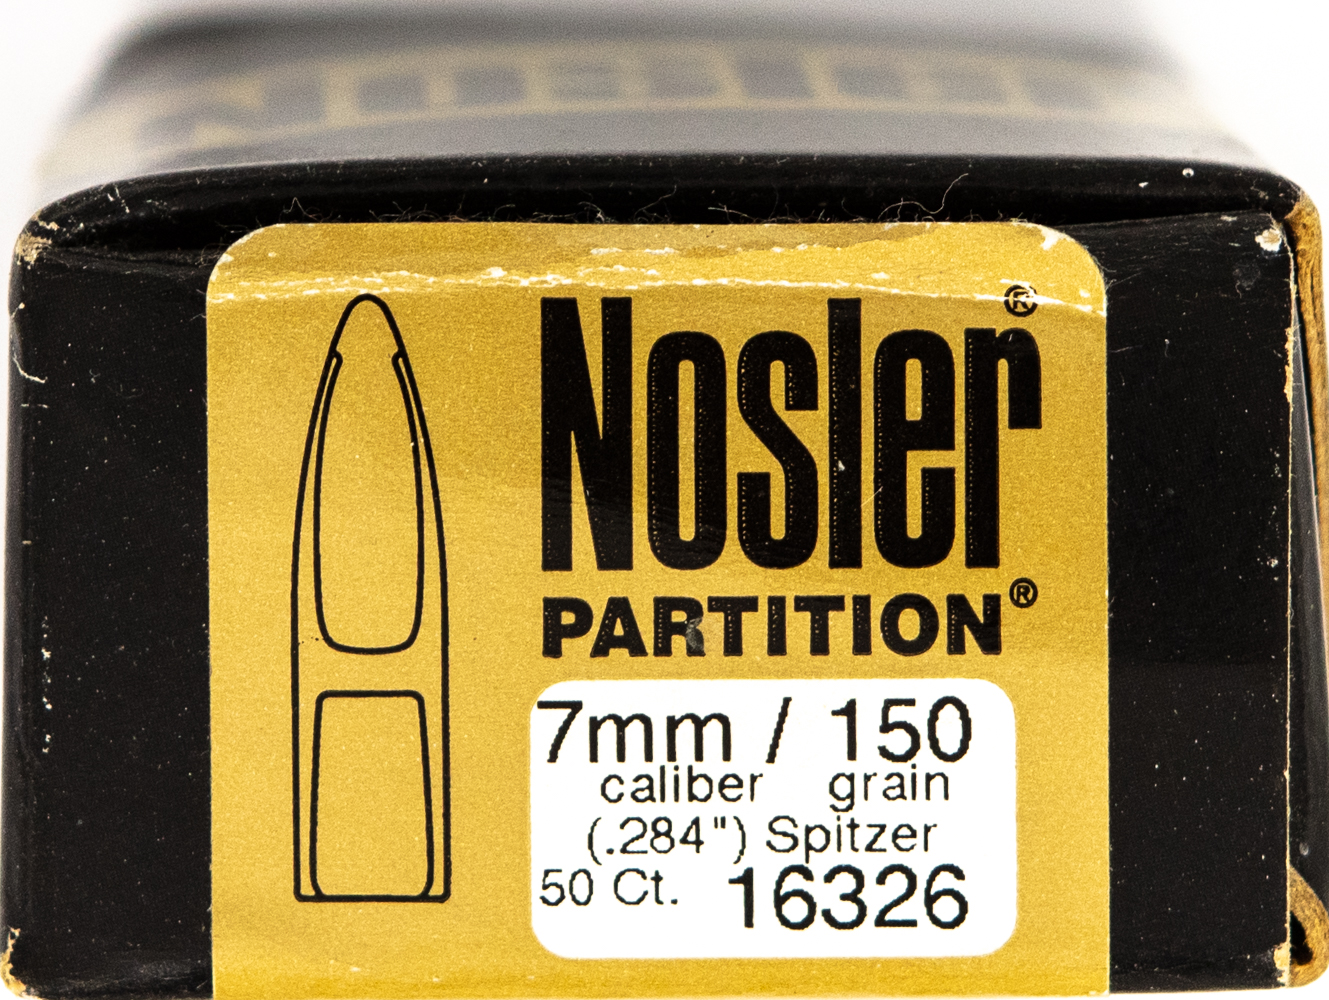 Nosler .284 150grs.Partition 7